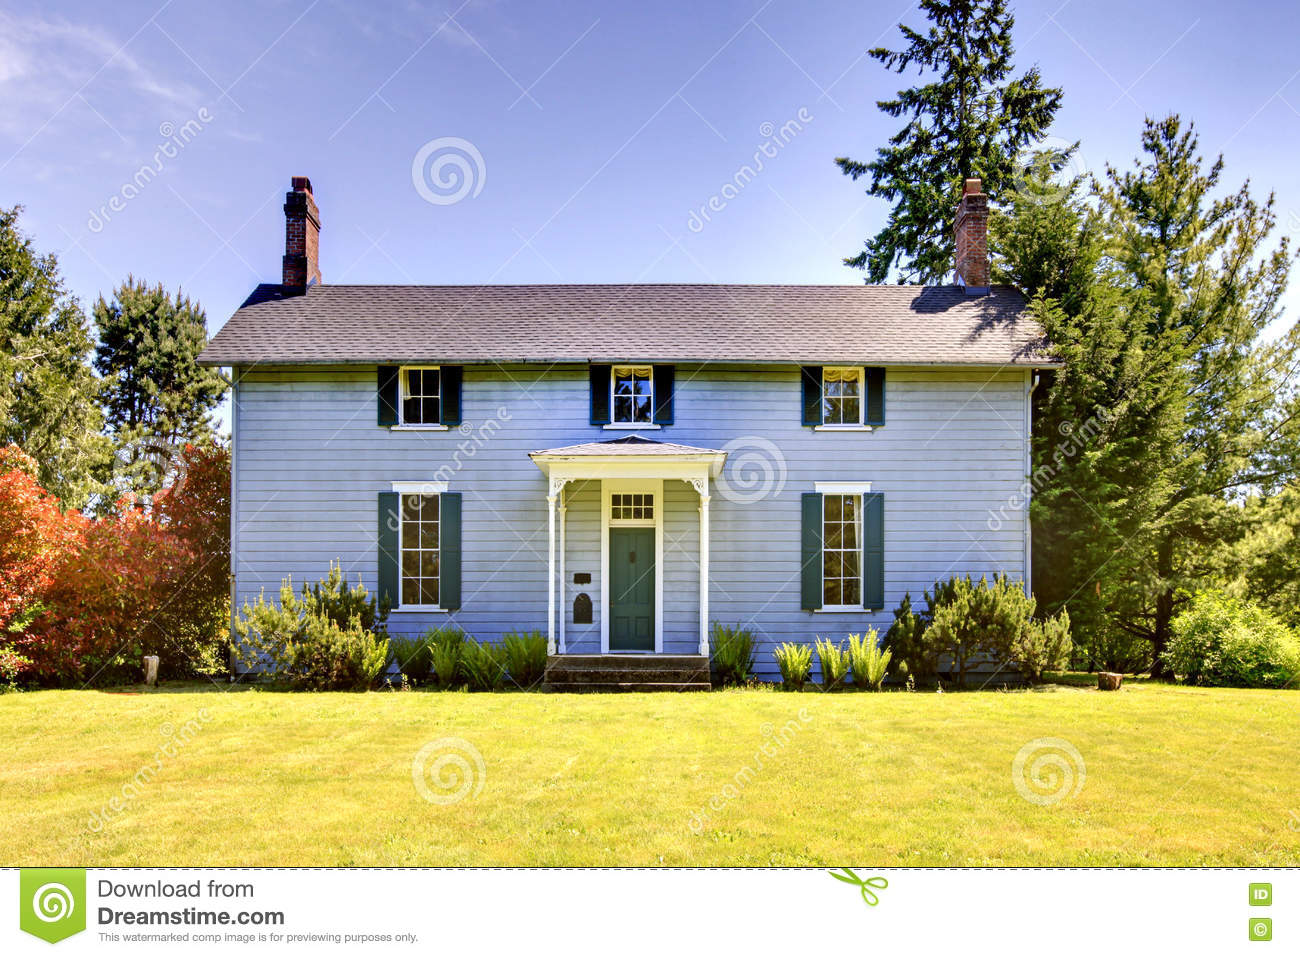 American two story house with blue exterior paint and - How to paint a 2 story house exterior ...